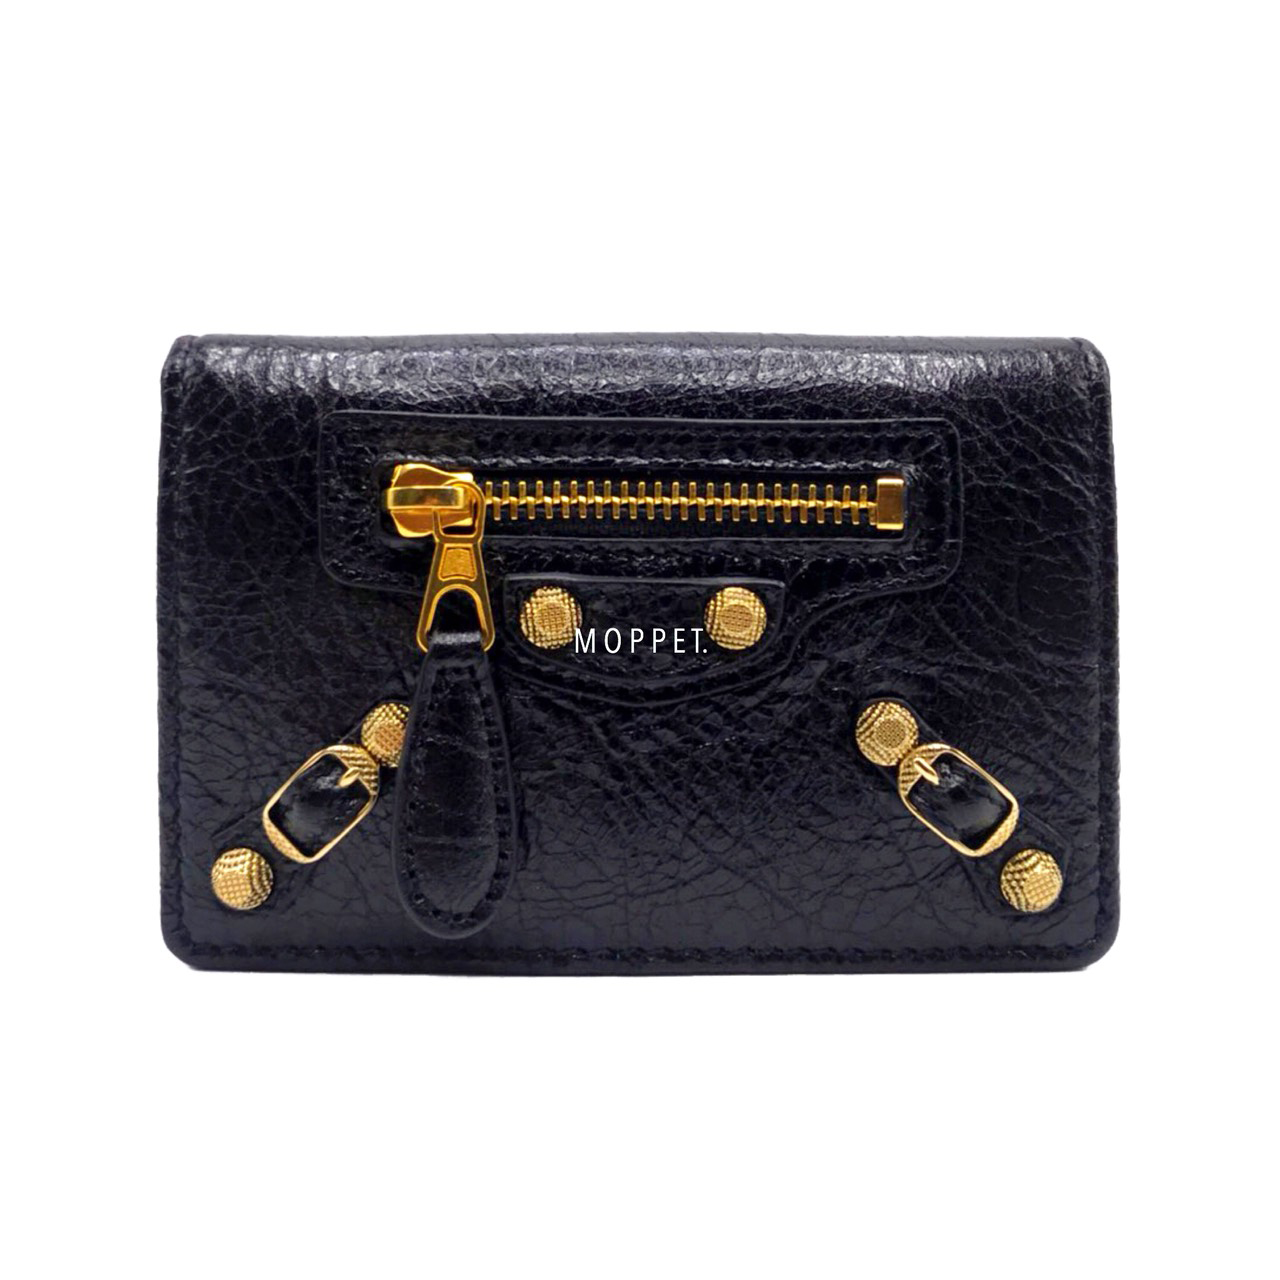 New Balenciaga Card Holder in Black Leather Giant GHW